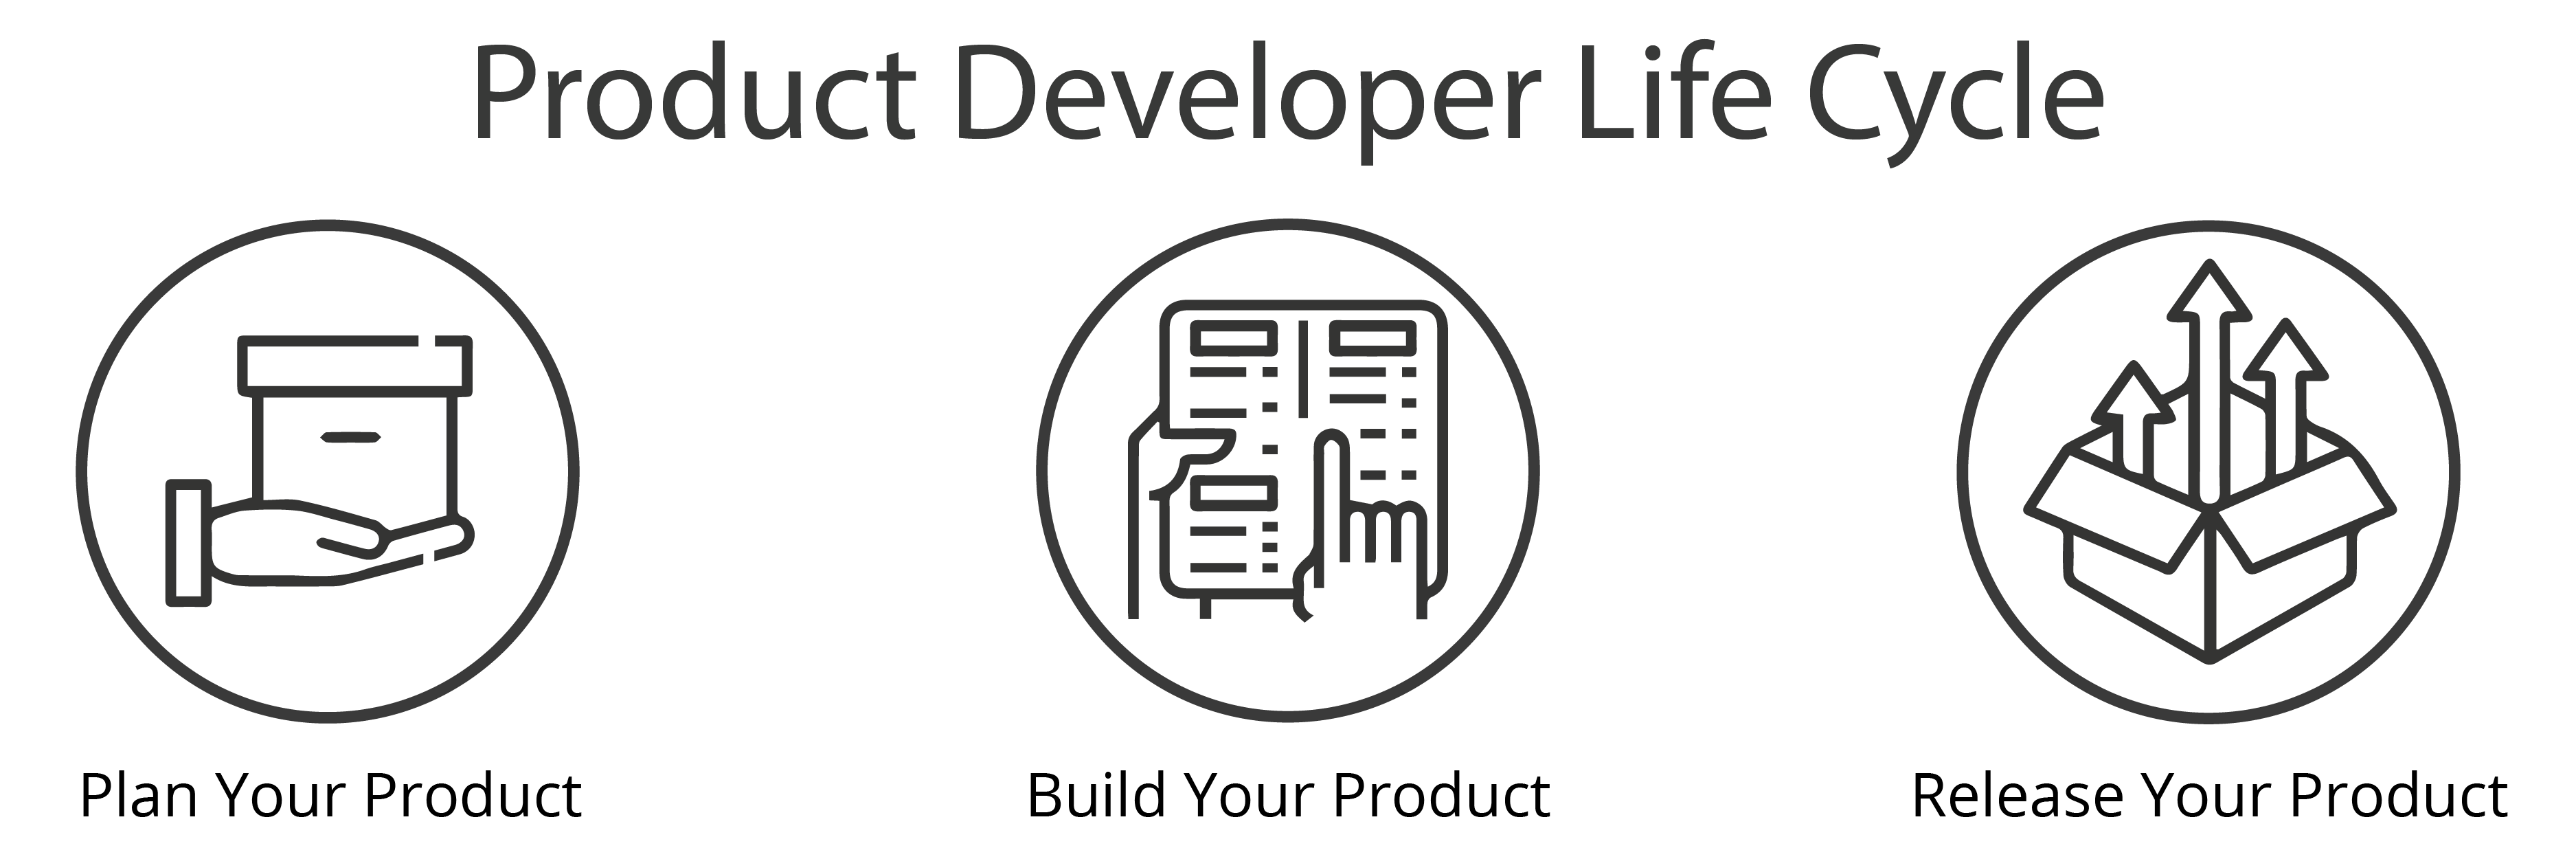 Product developer lifecycle: Plan your product, Build your product, Release your product